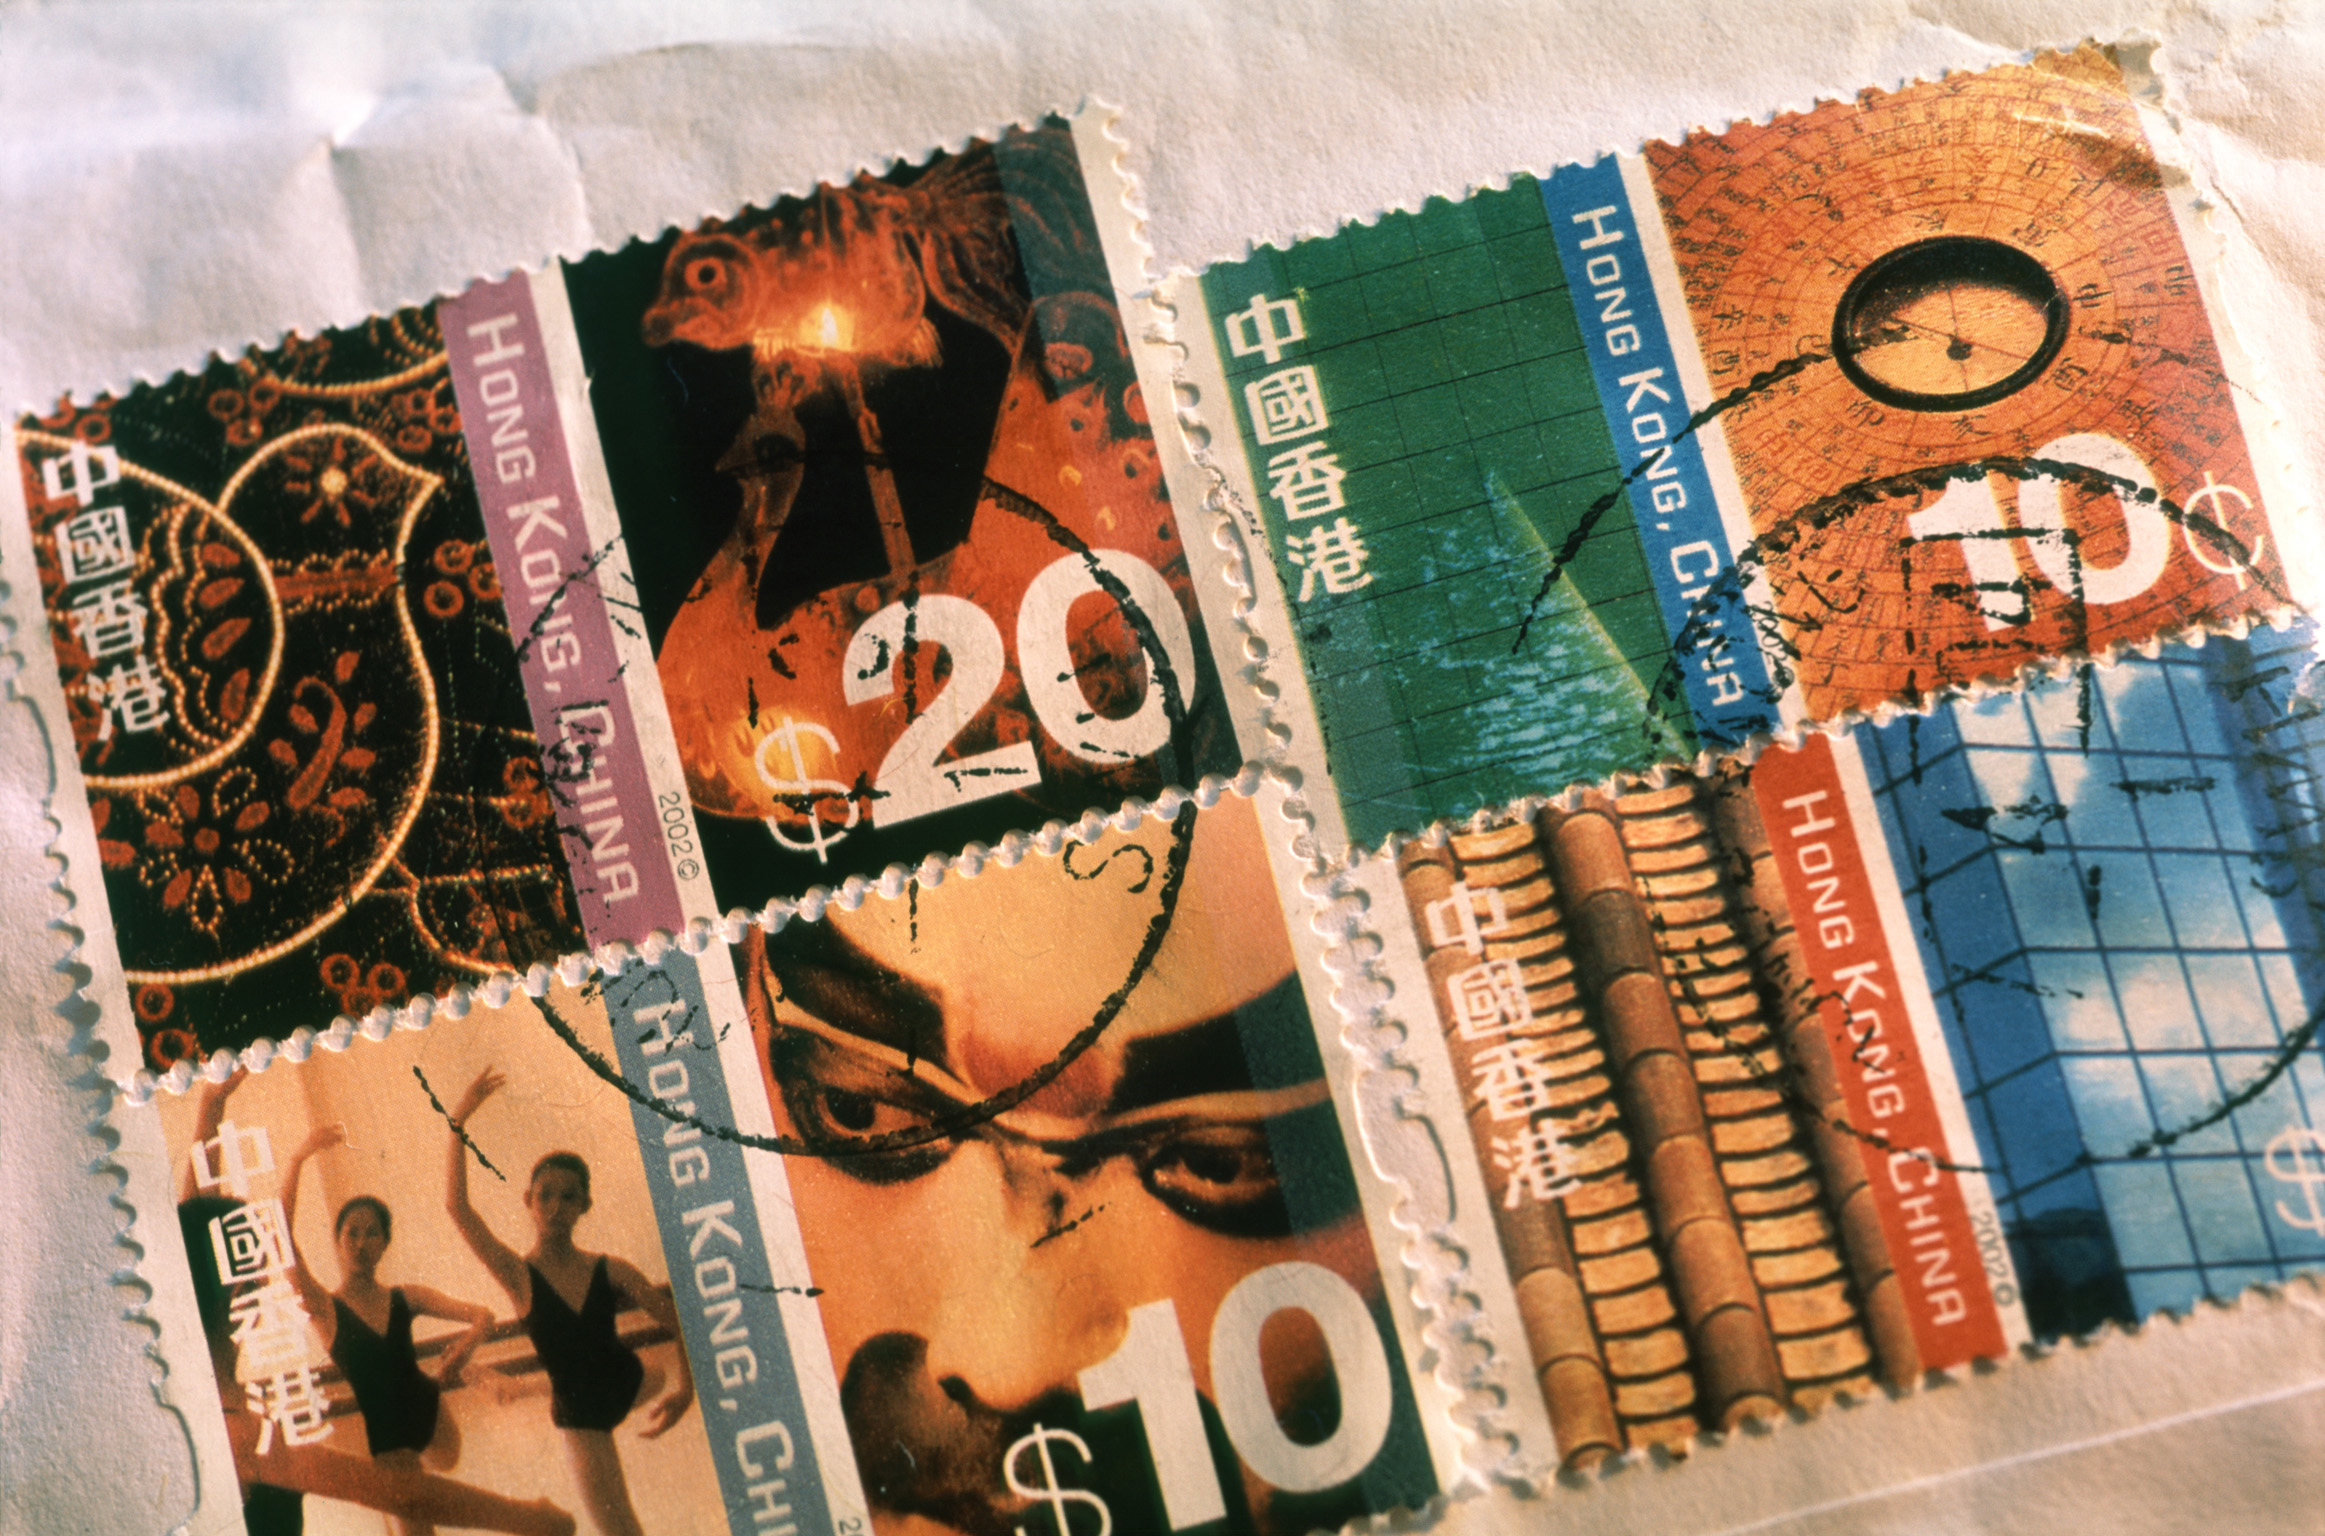 Assorted cancelled Japanese stamps on a packet or letter, close up view